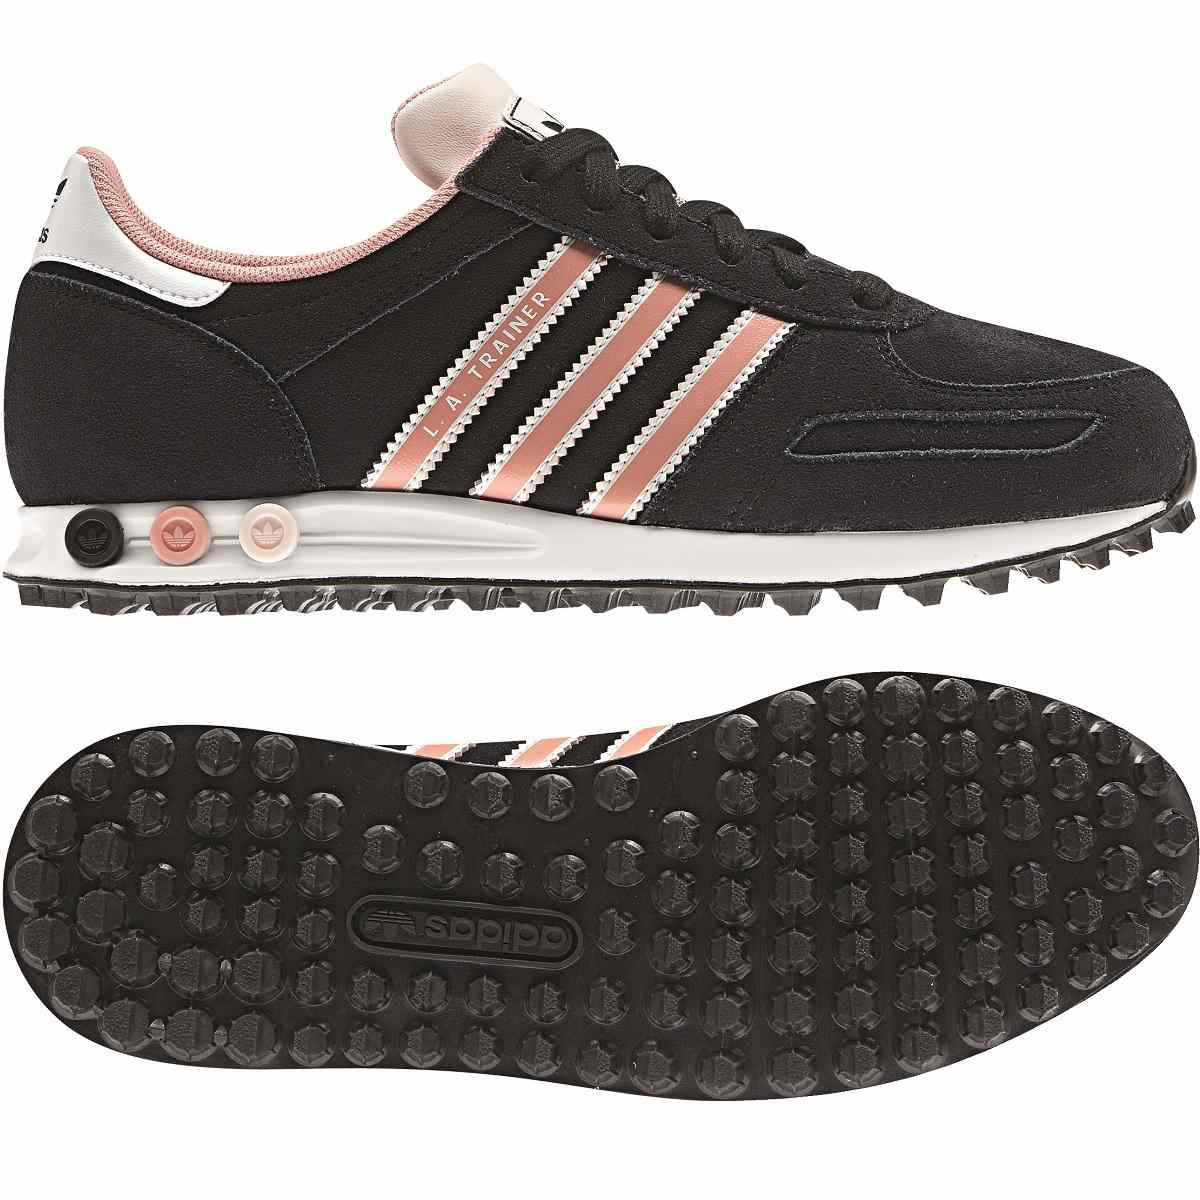 adidas la trainer damen schuhe turnschuhe sneakers schwarz rosa ebay. Black Bedroom Furniture Sets. Home Design Ideas